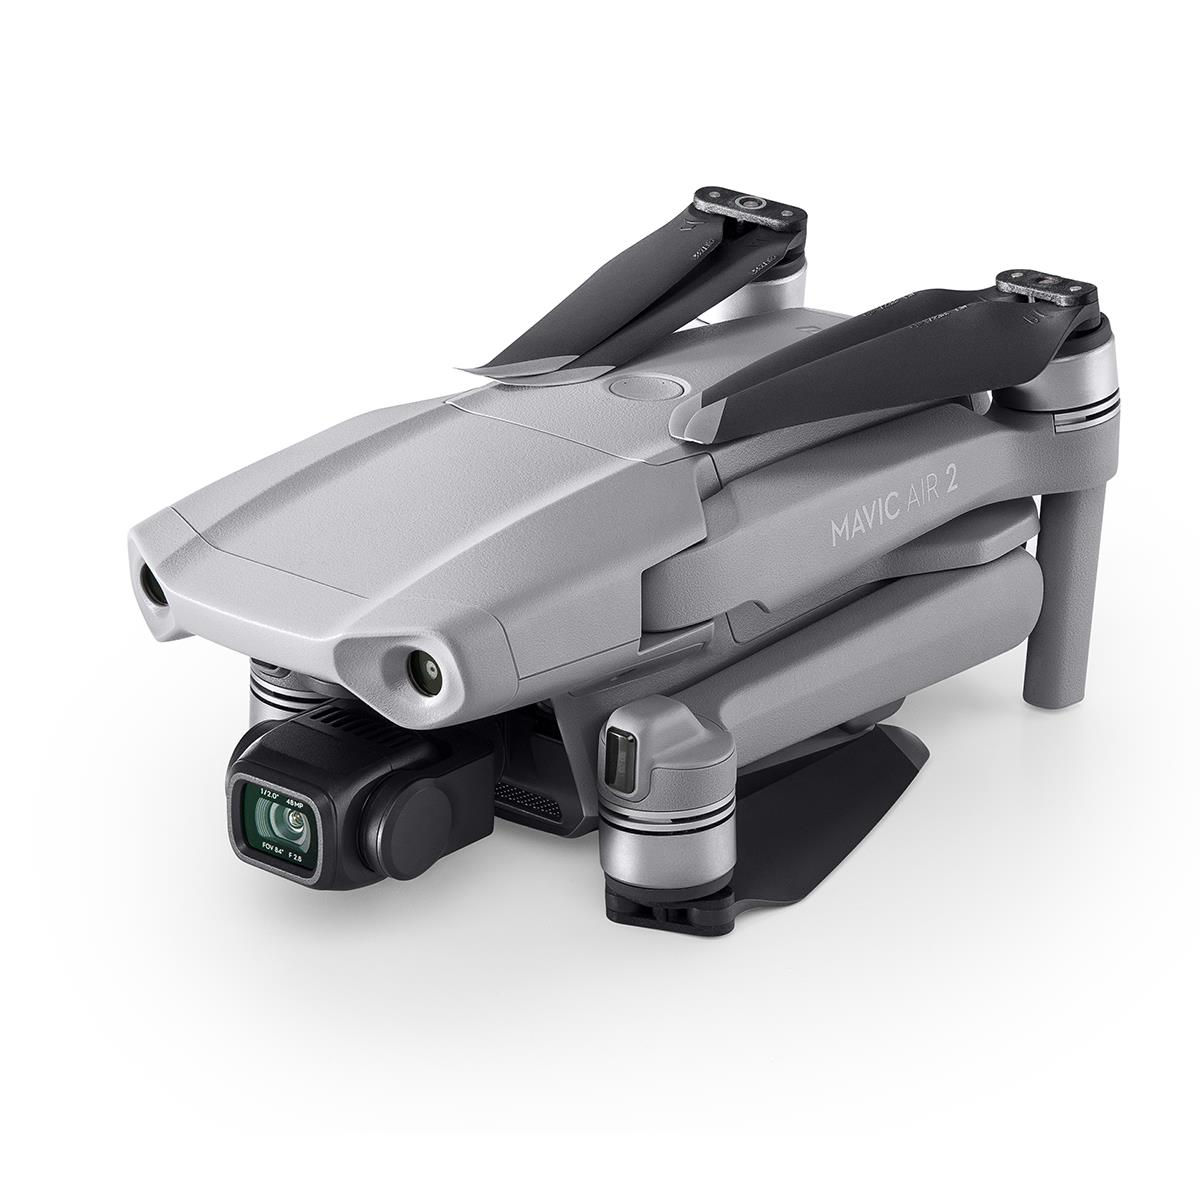 dji mavic air 2 specs image